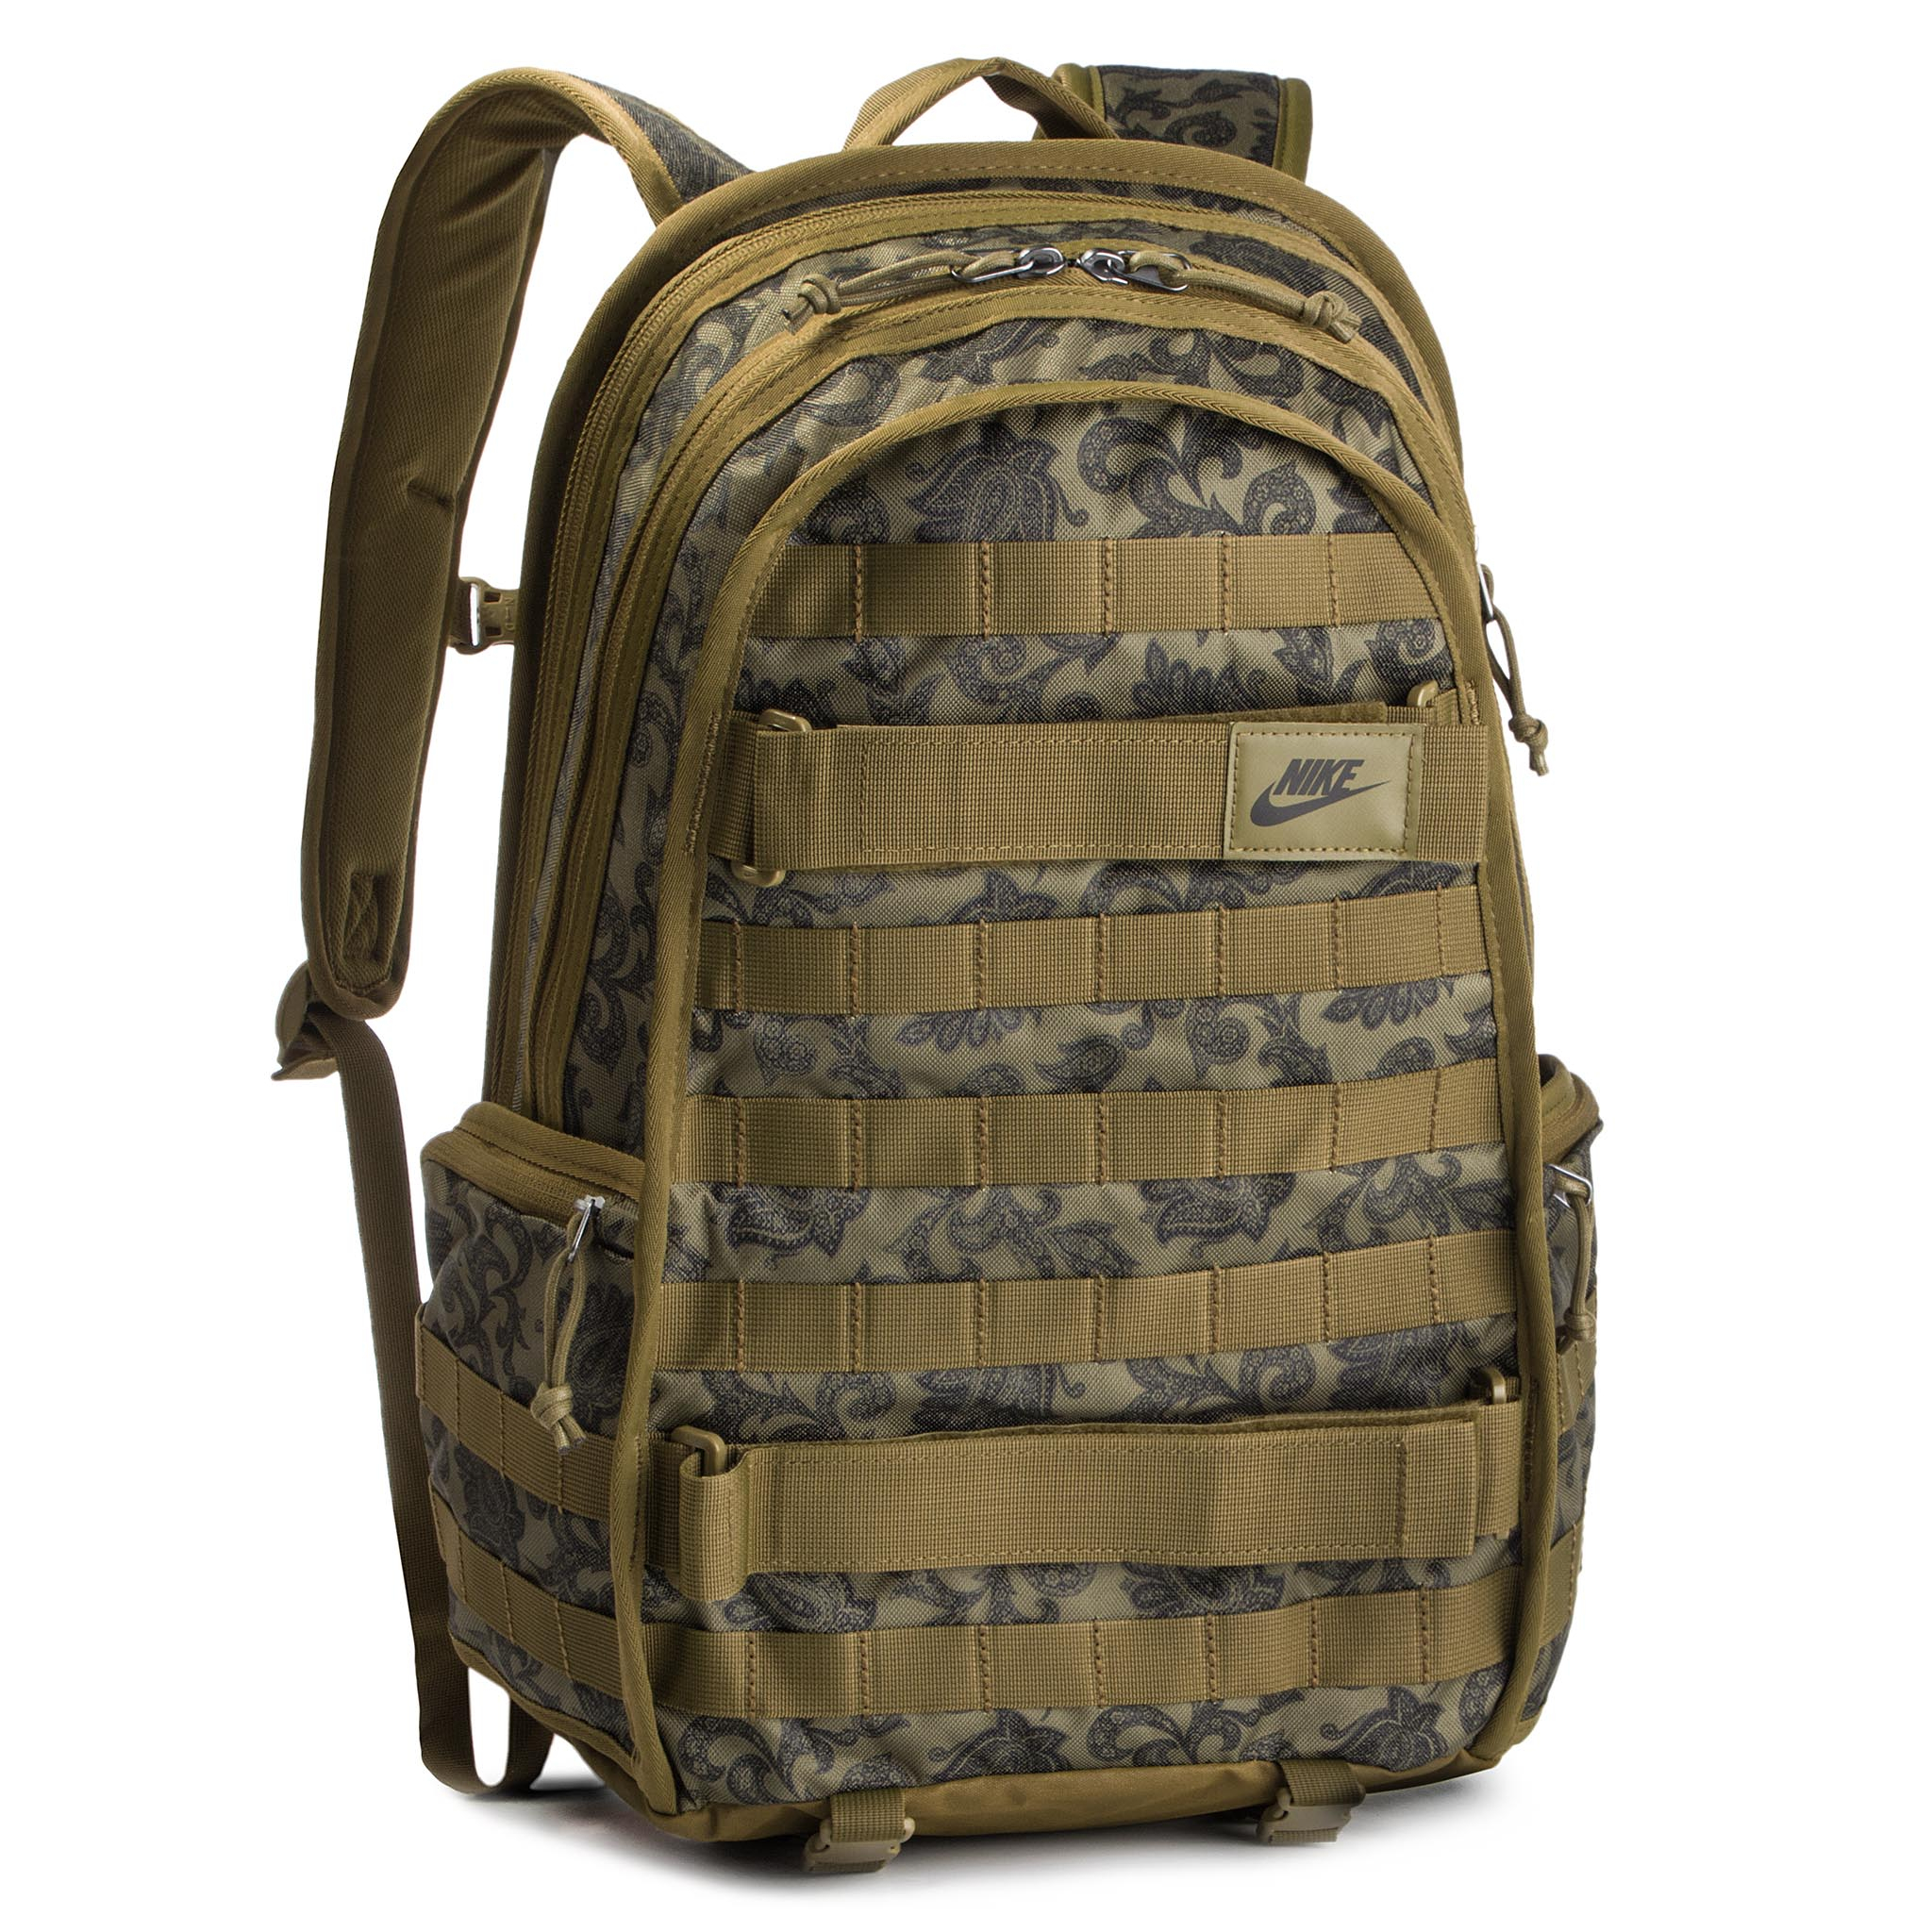 0e637d7df8f Tommy Hilfiger Leather Camo Backpack | The Shred Centre